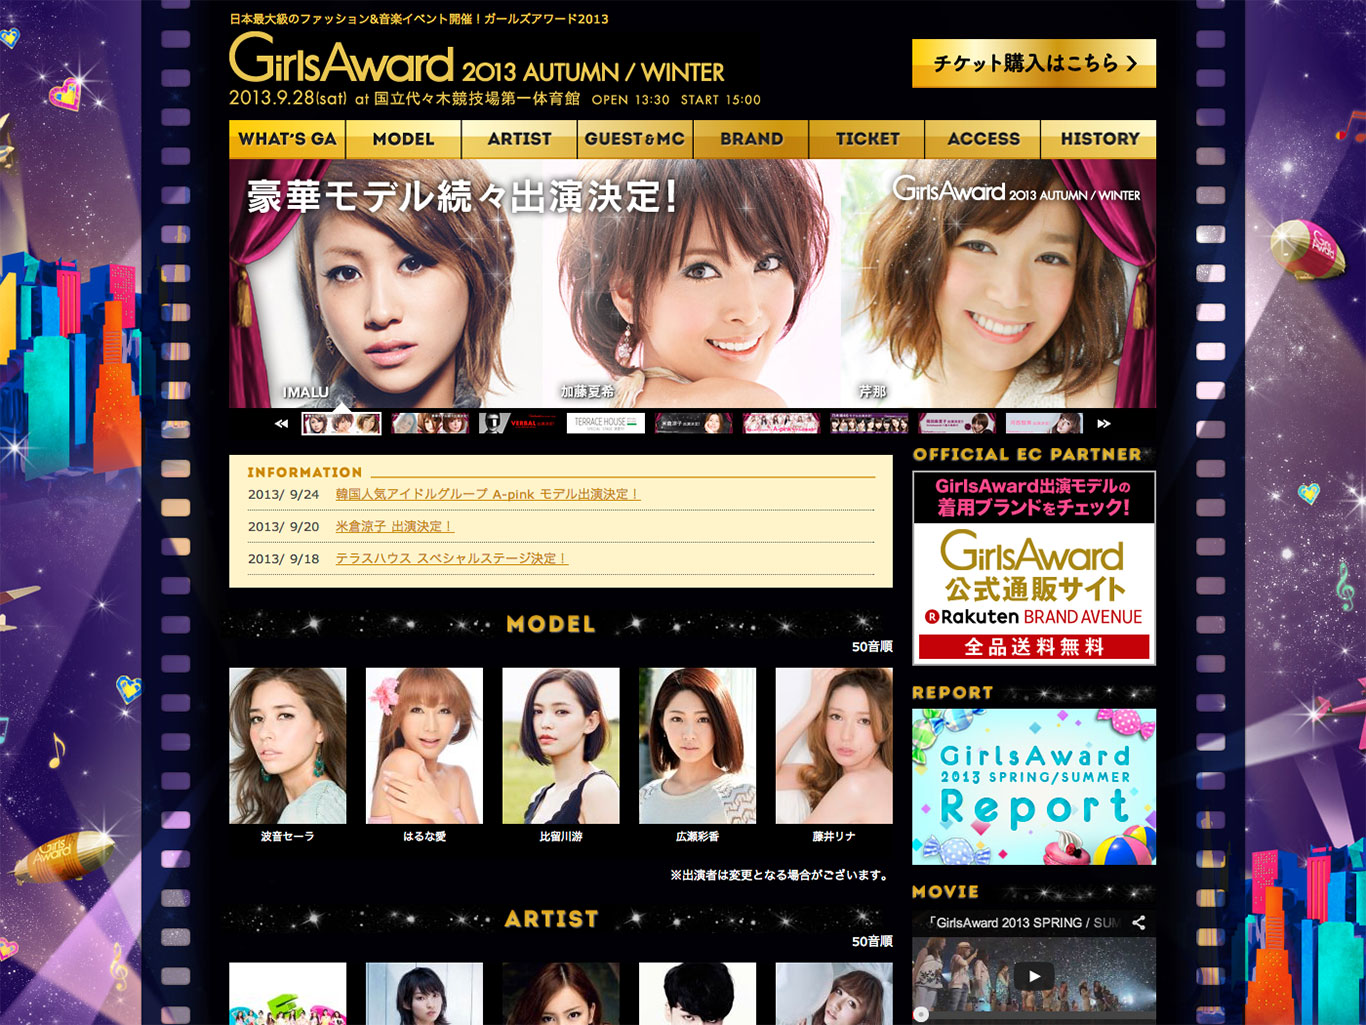 GirlsAward(ガールズアワード) 2013 AUTUMN/WINTER,